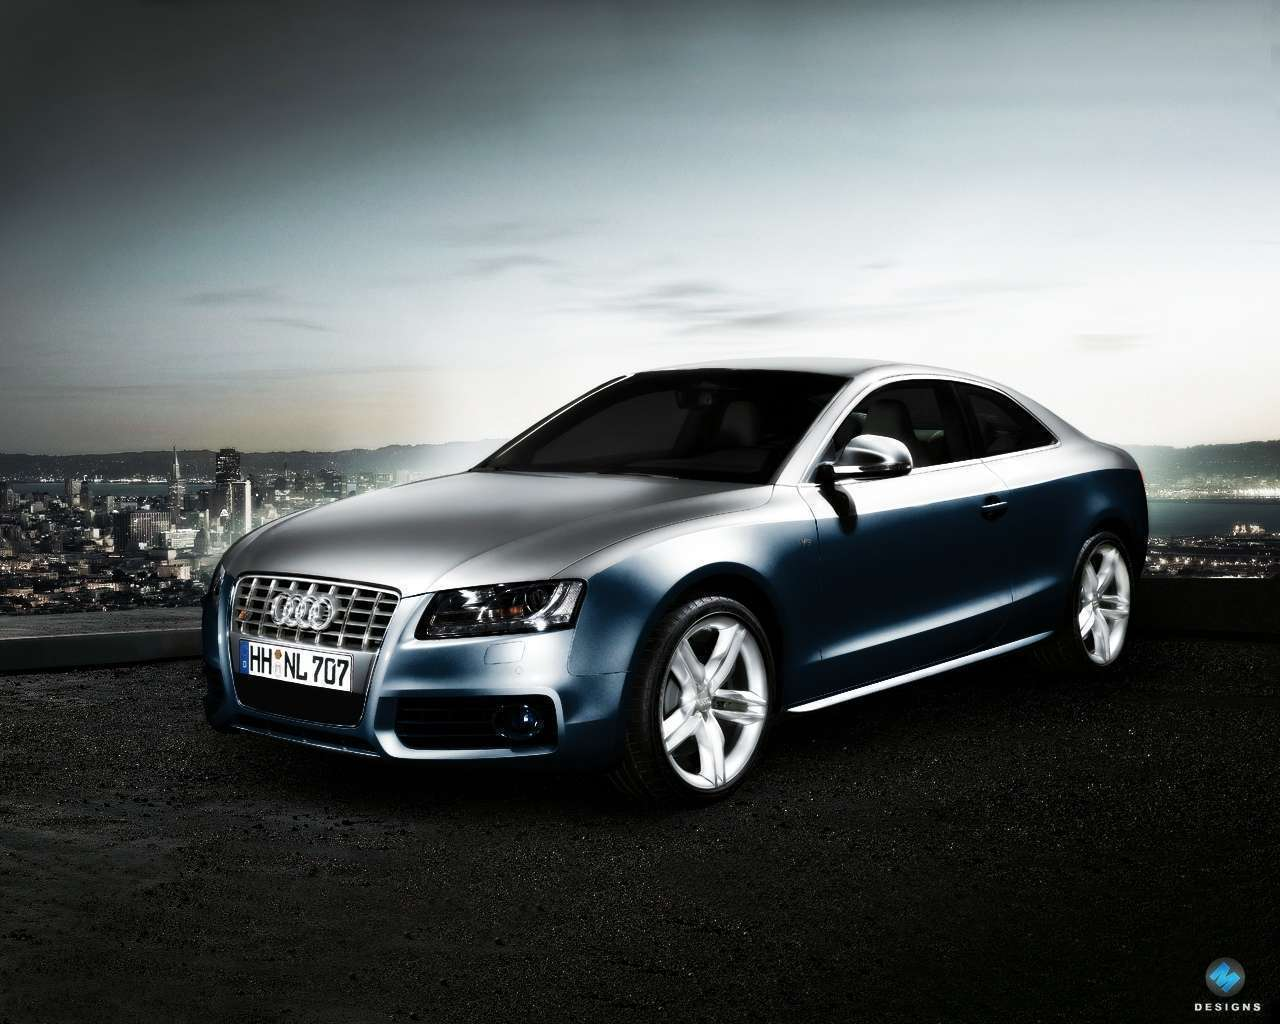 coolest hd wallpapers audi - photo #21